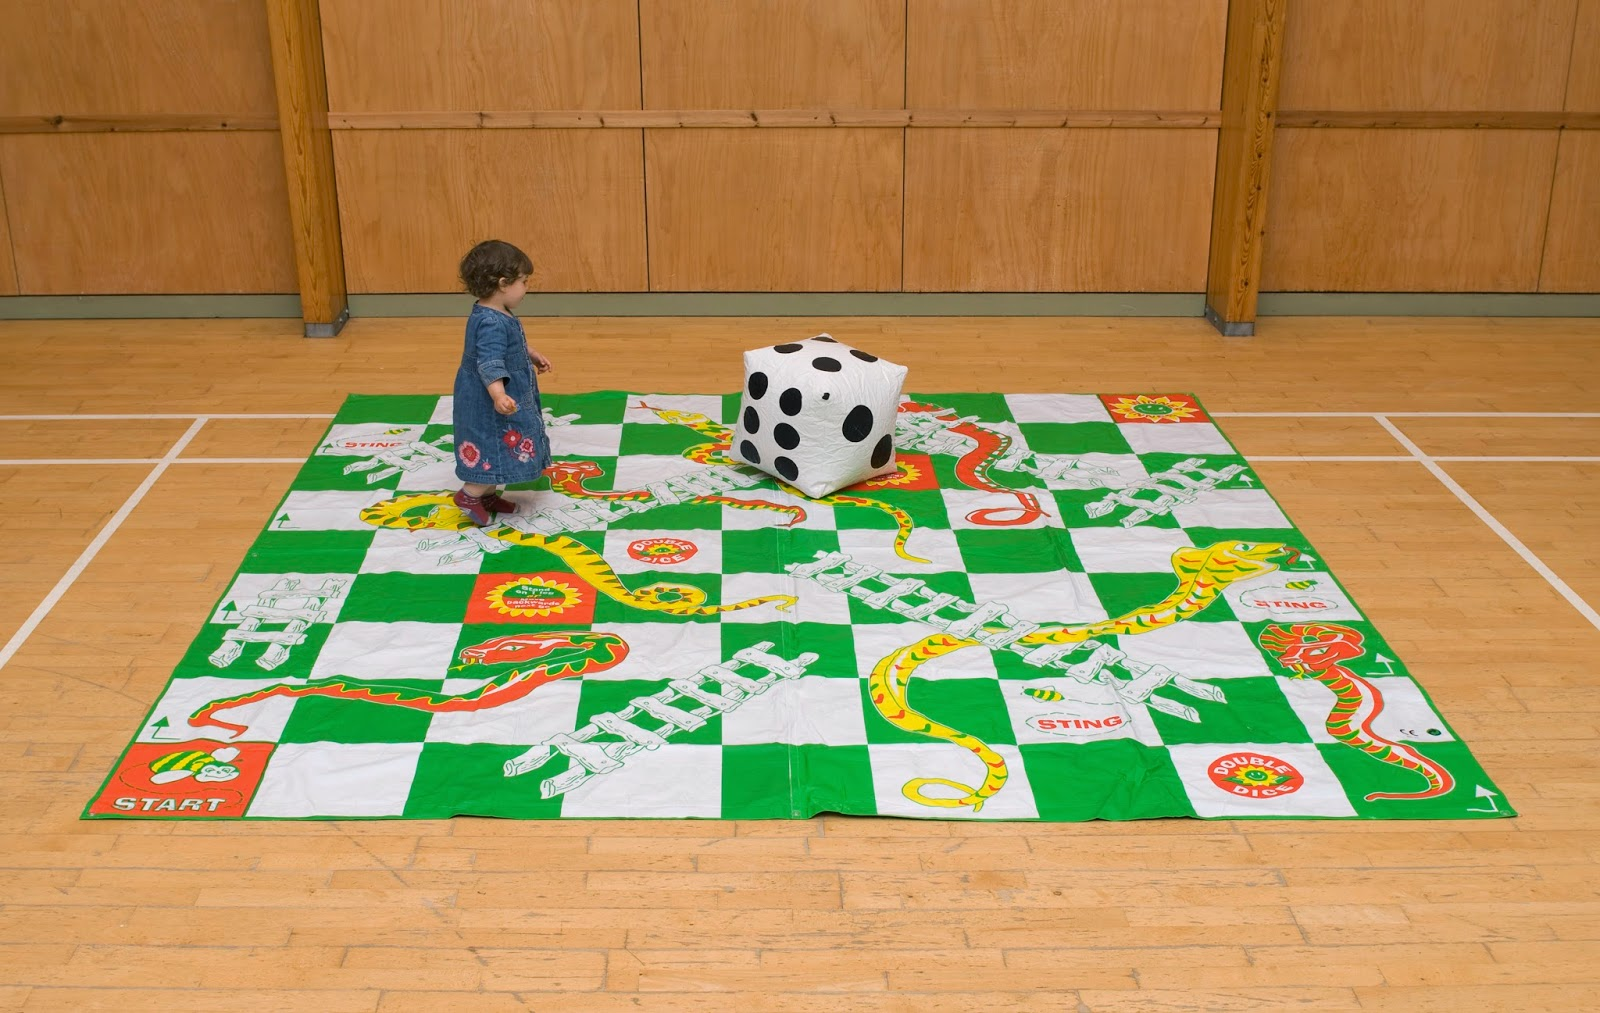 Snakes And Ladders on Snakes Ladders Floor Game